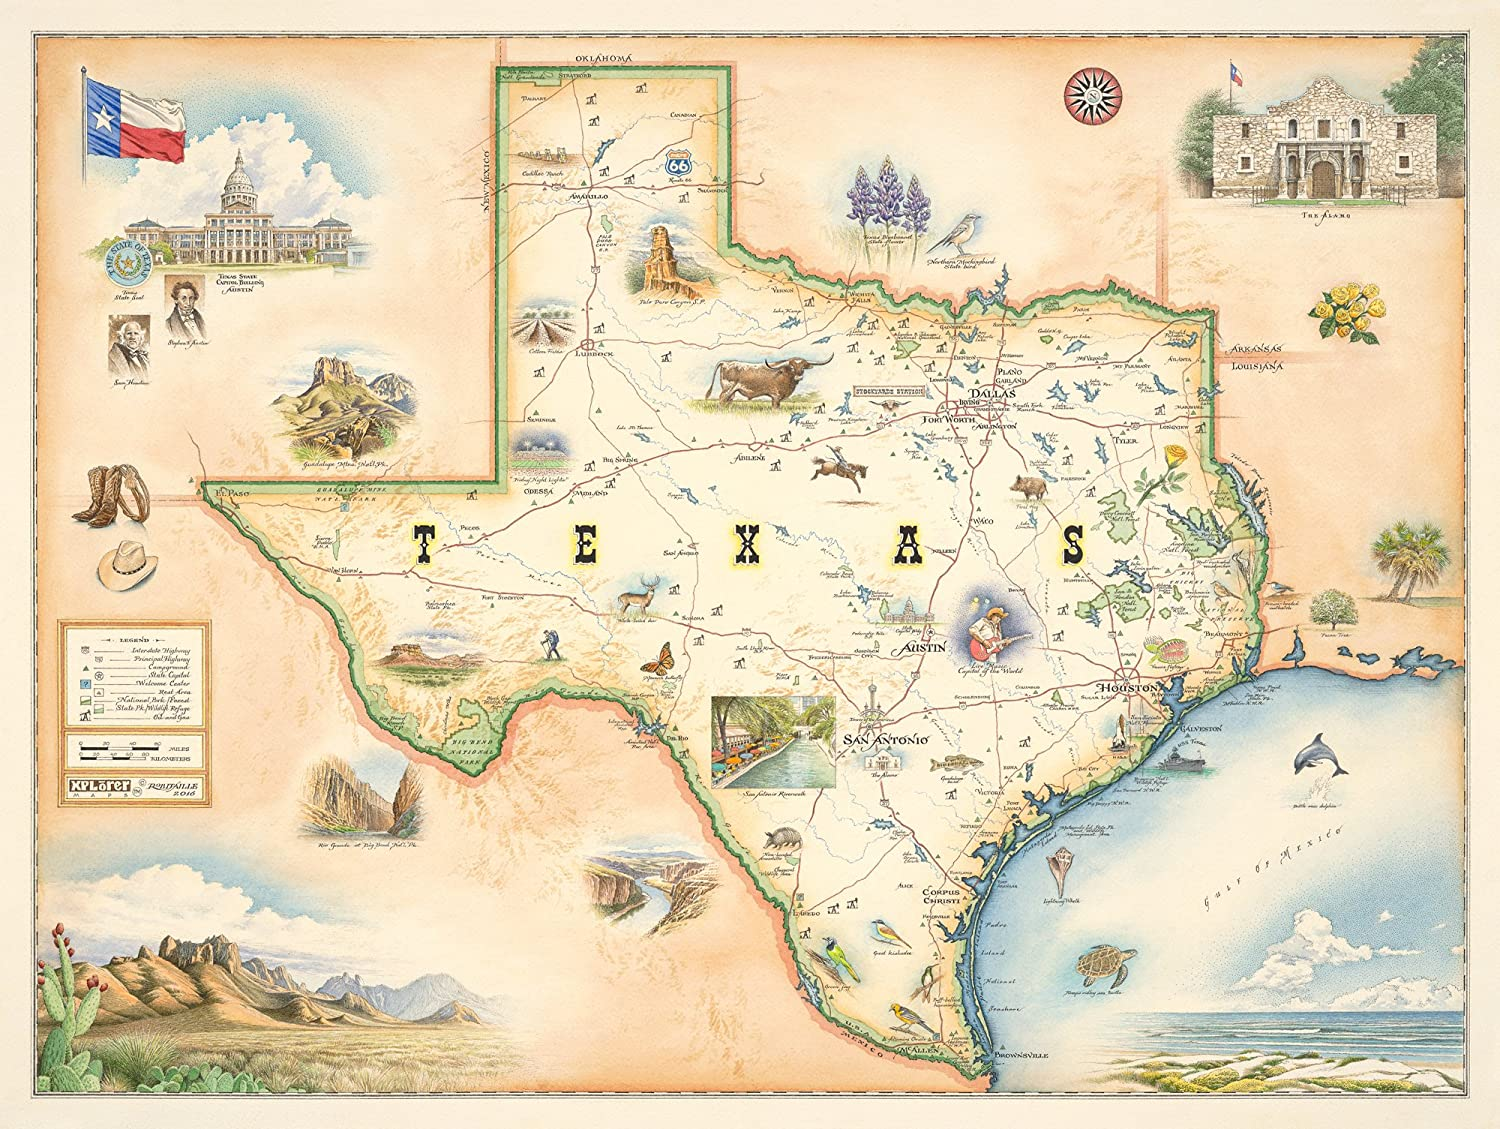 State Map Of Tx.Amazon Com Xplorer Maps Texas State Map Hand Drawn Map Art By